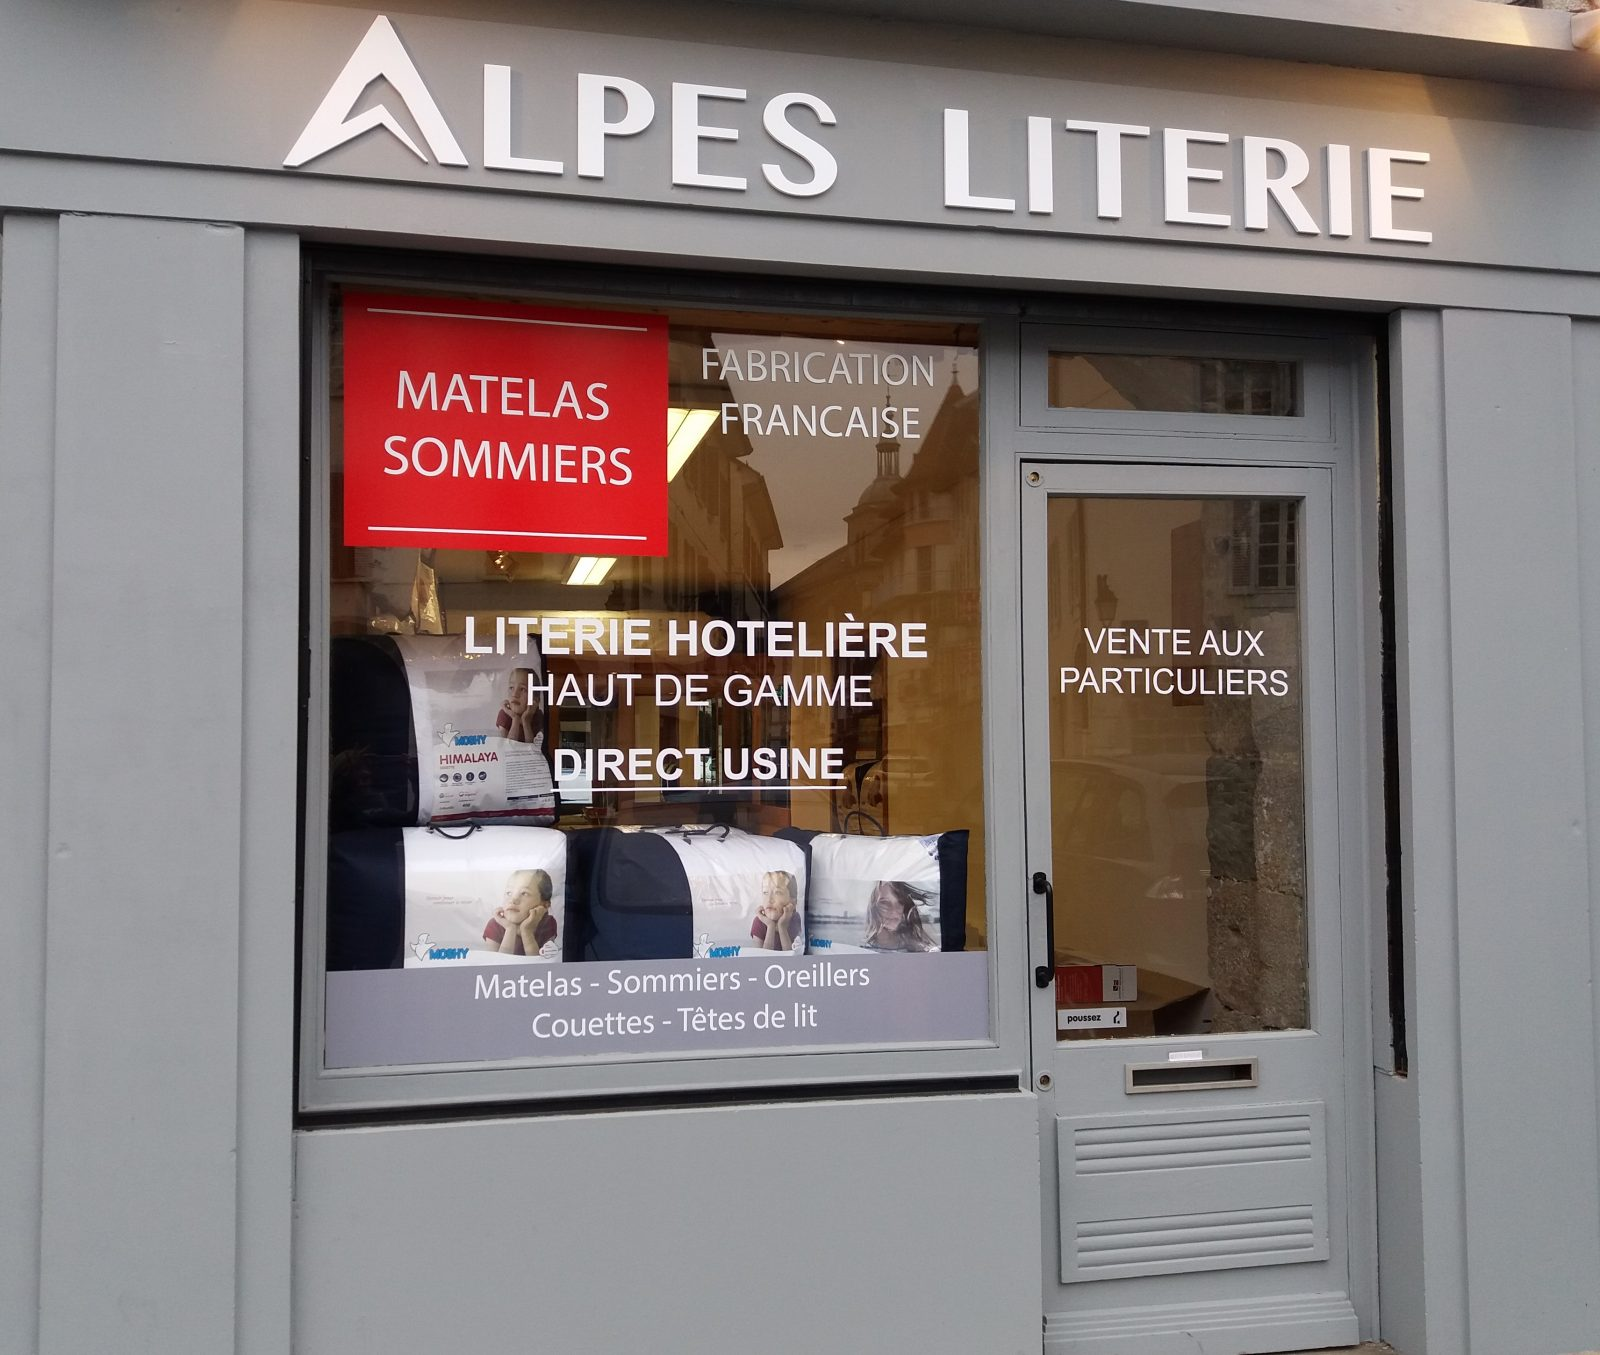 Alpes Literie Rumilly